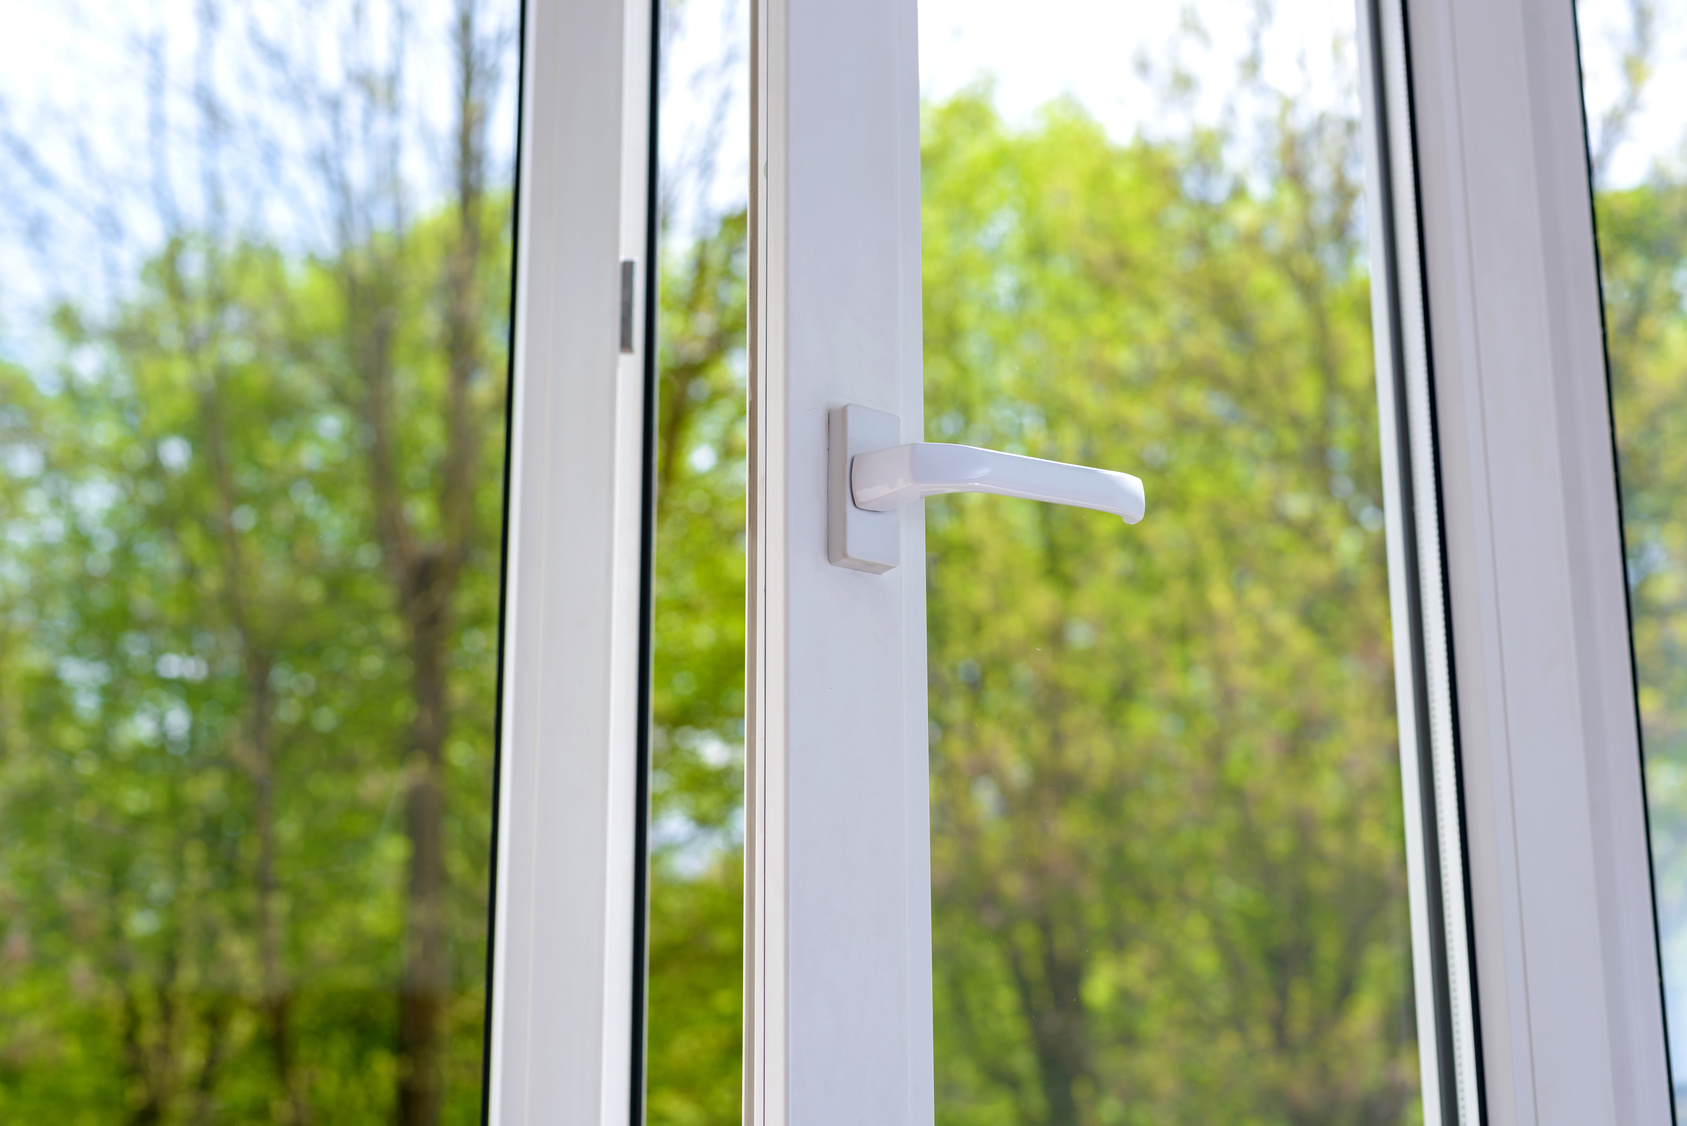 Vinyl replacement windows vs fiberglass windows virginia beach for Good replacement windows